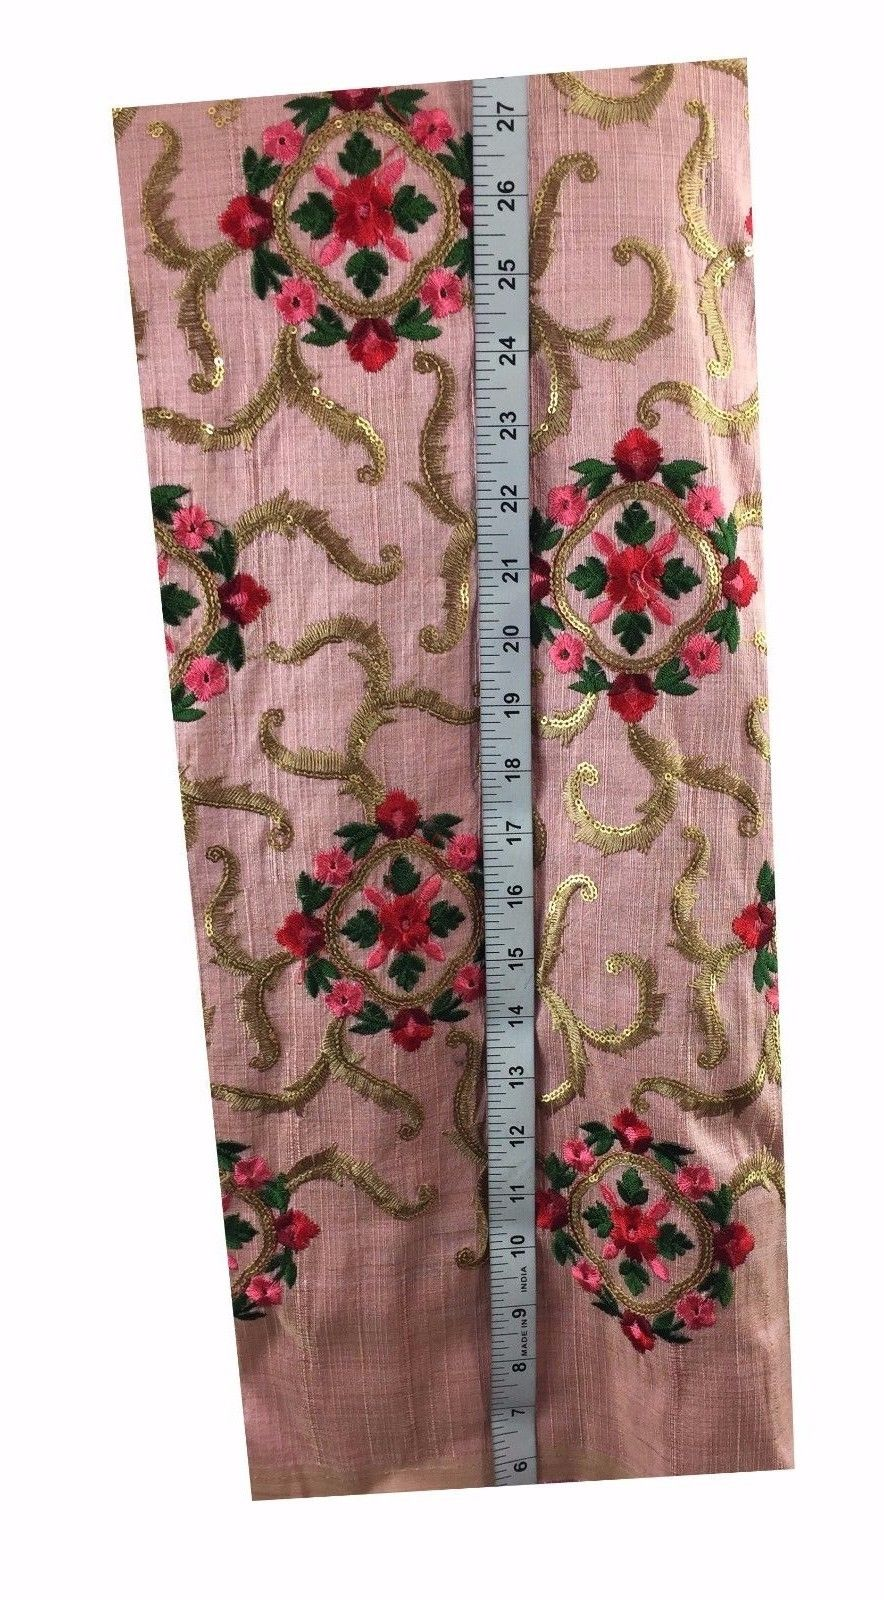 online fabric shopping buy blouse fabric online india Embroidered, Sequins Cotton Mix / Slub Pink, Gold, Red, Pink 48 inches Wide 9020